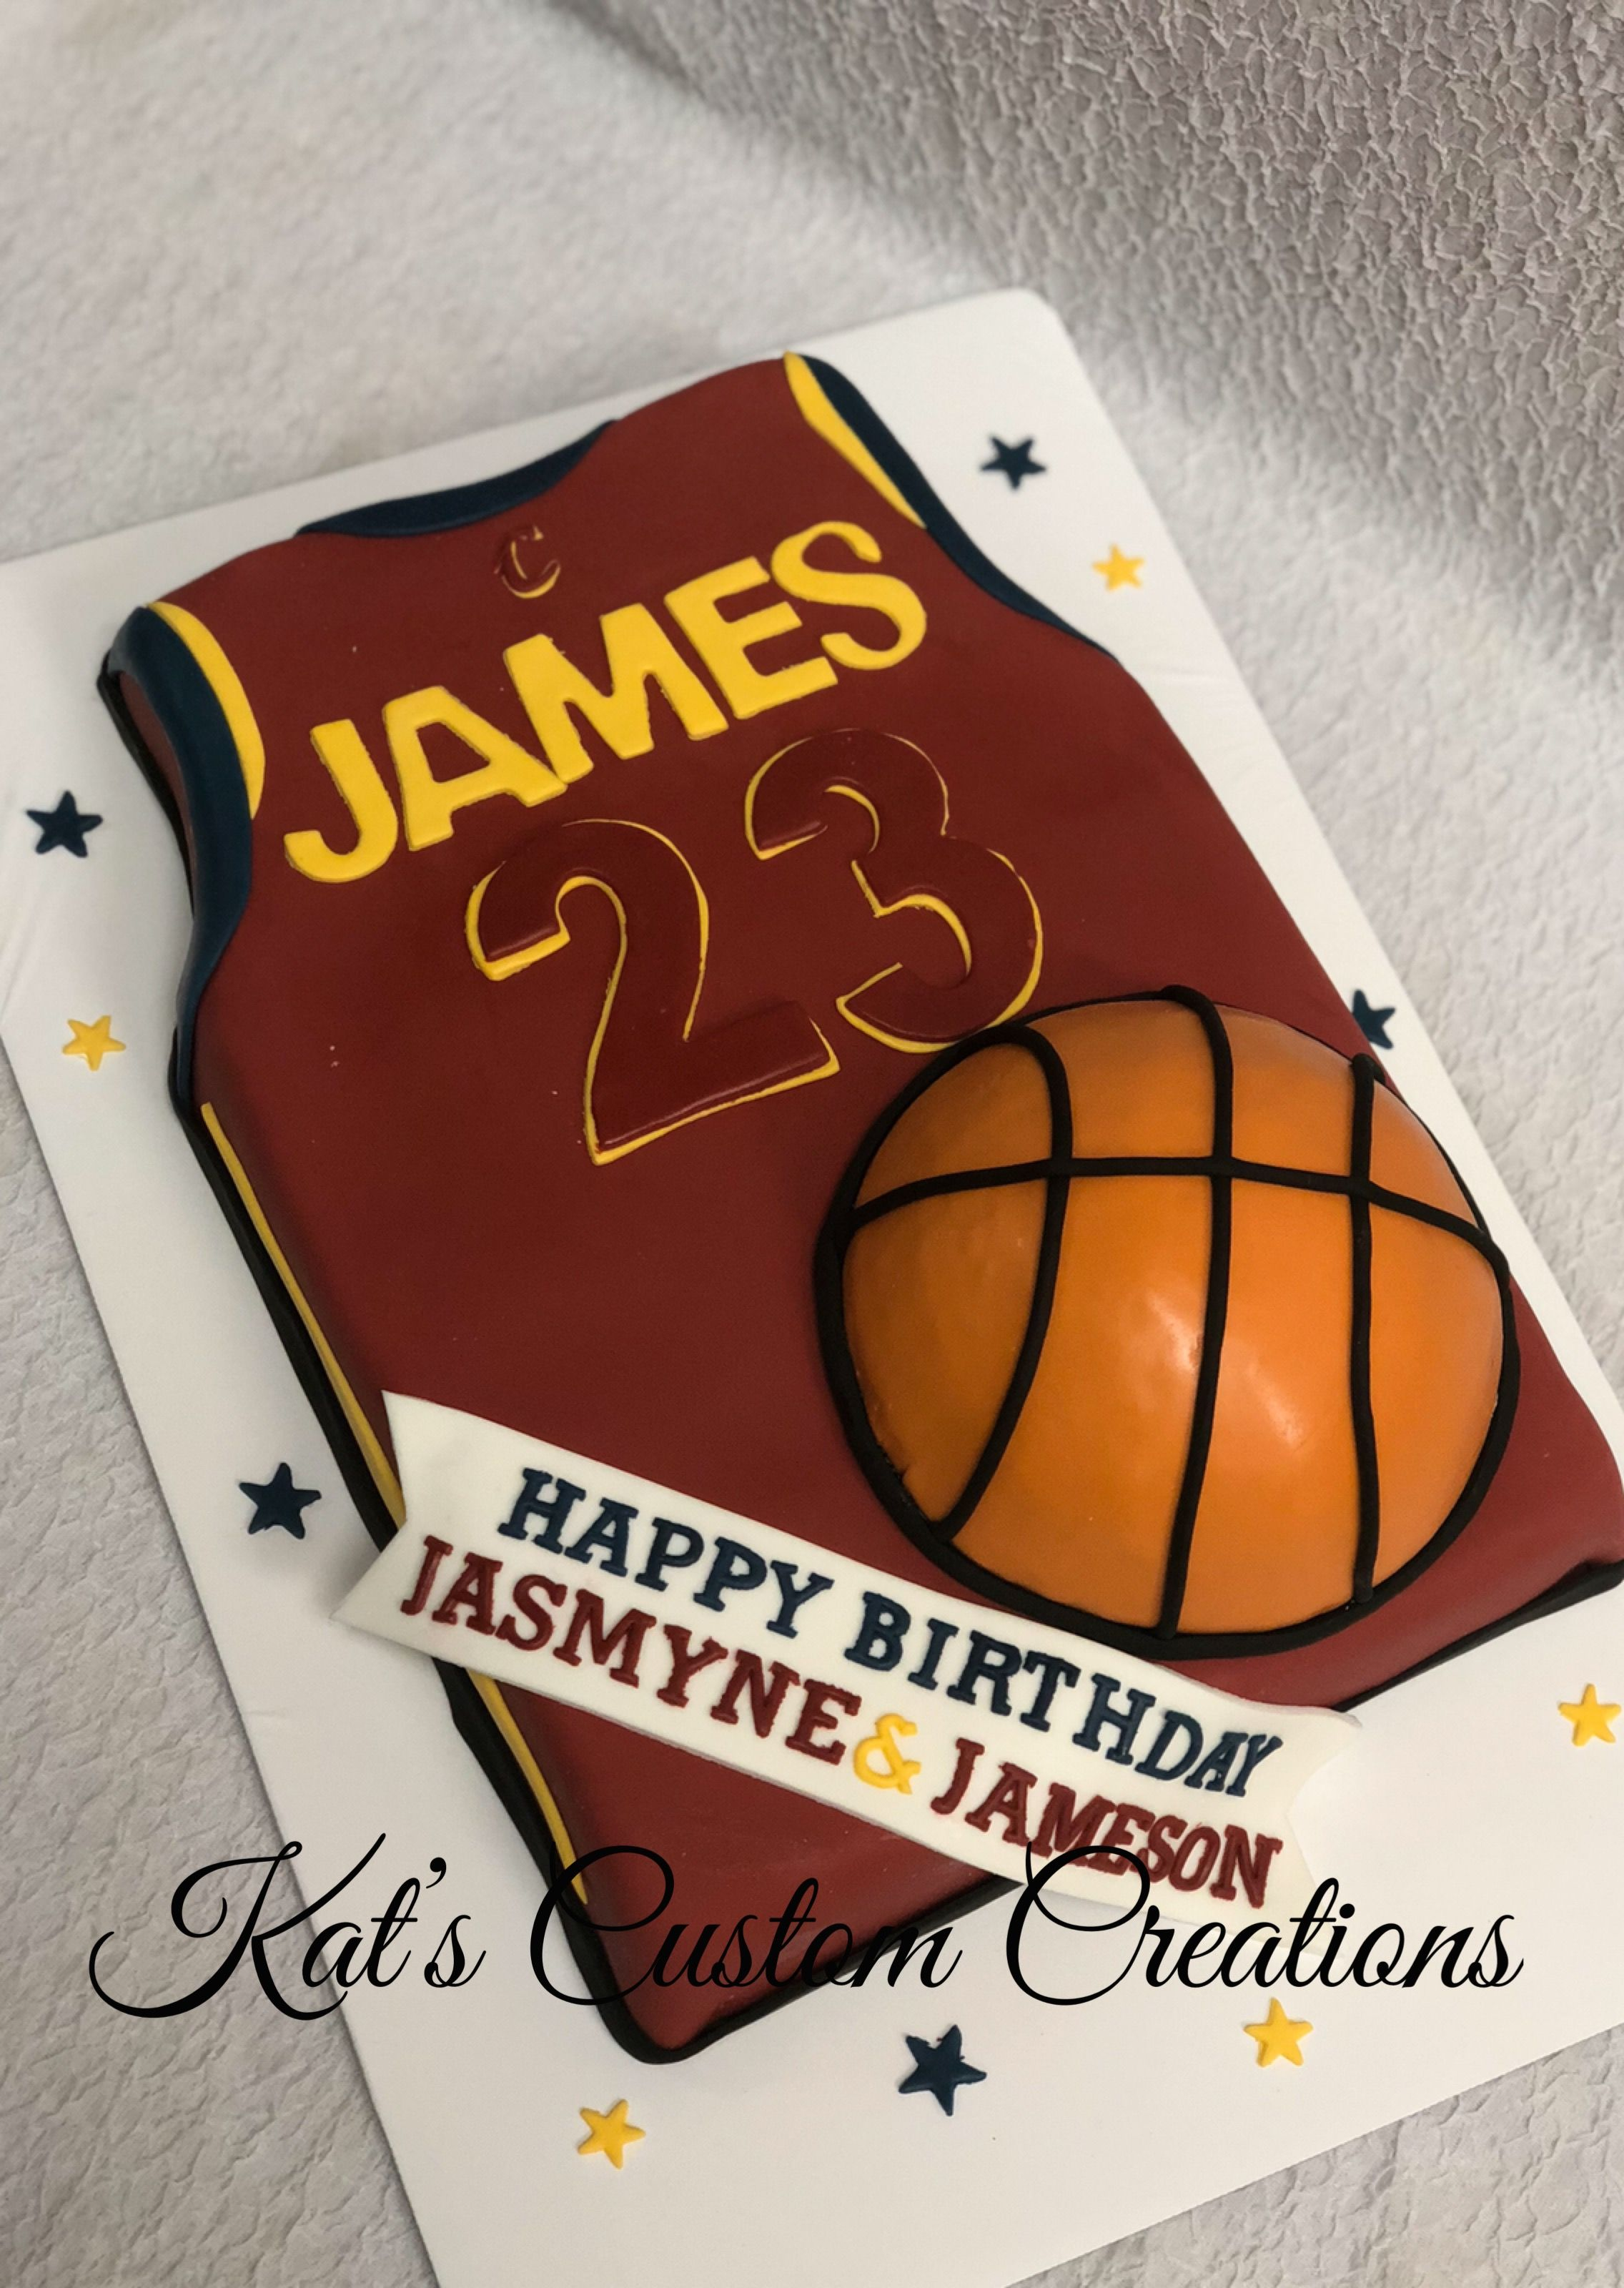 Outstanding Lebron James Jersey Cake Boy Birthday Cake Funny Birthday Cards Online Alyptdamsfinfo